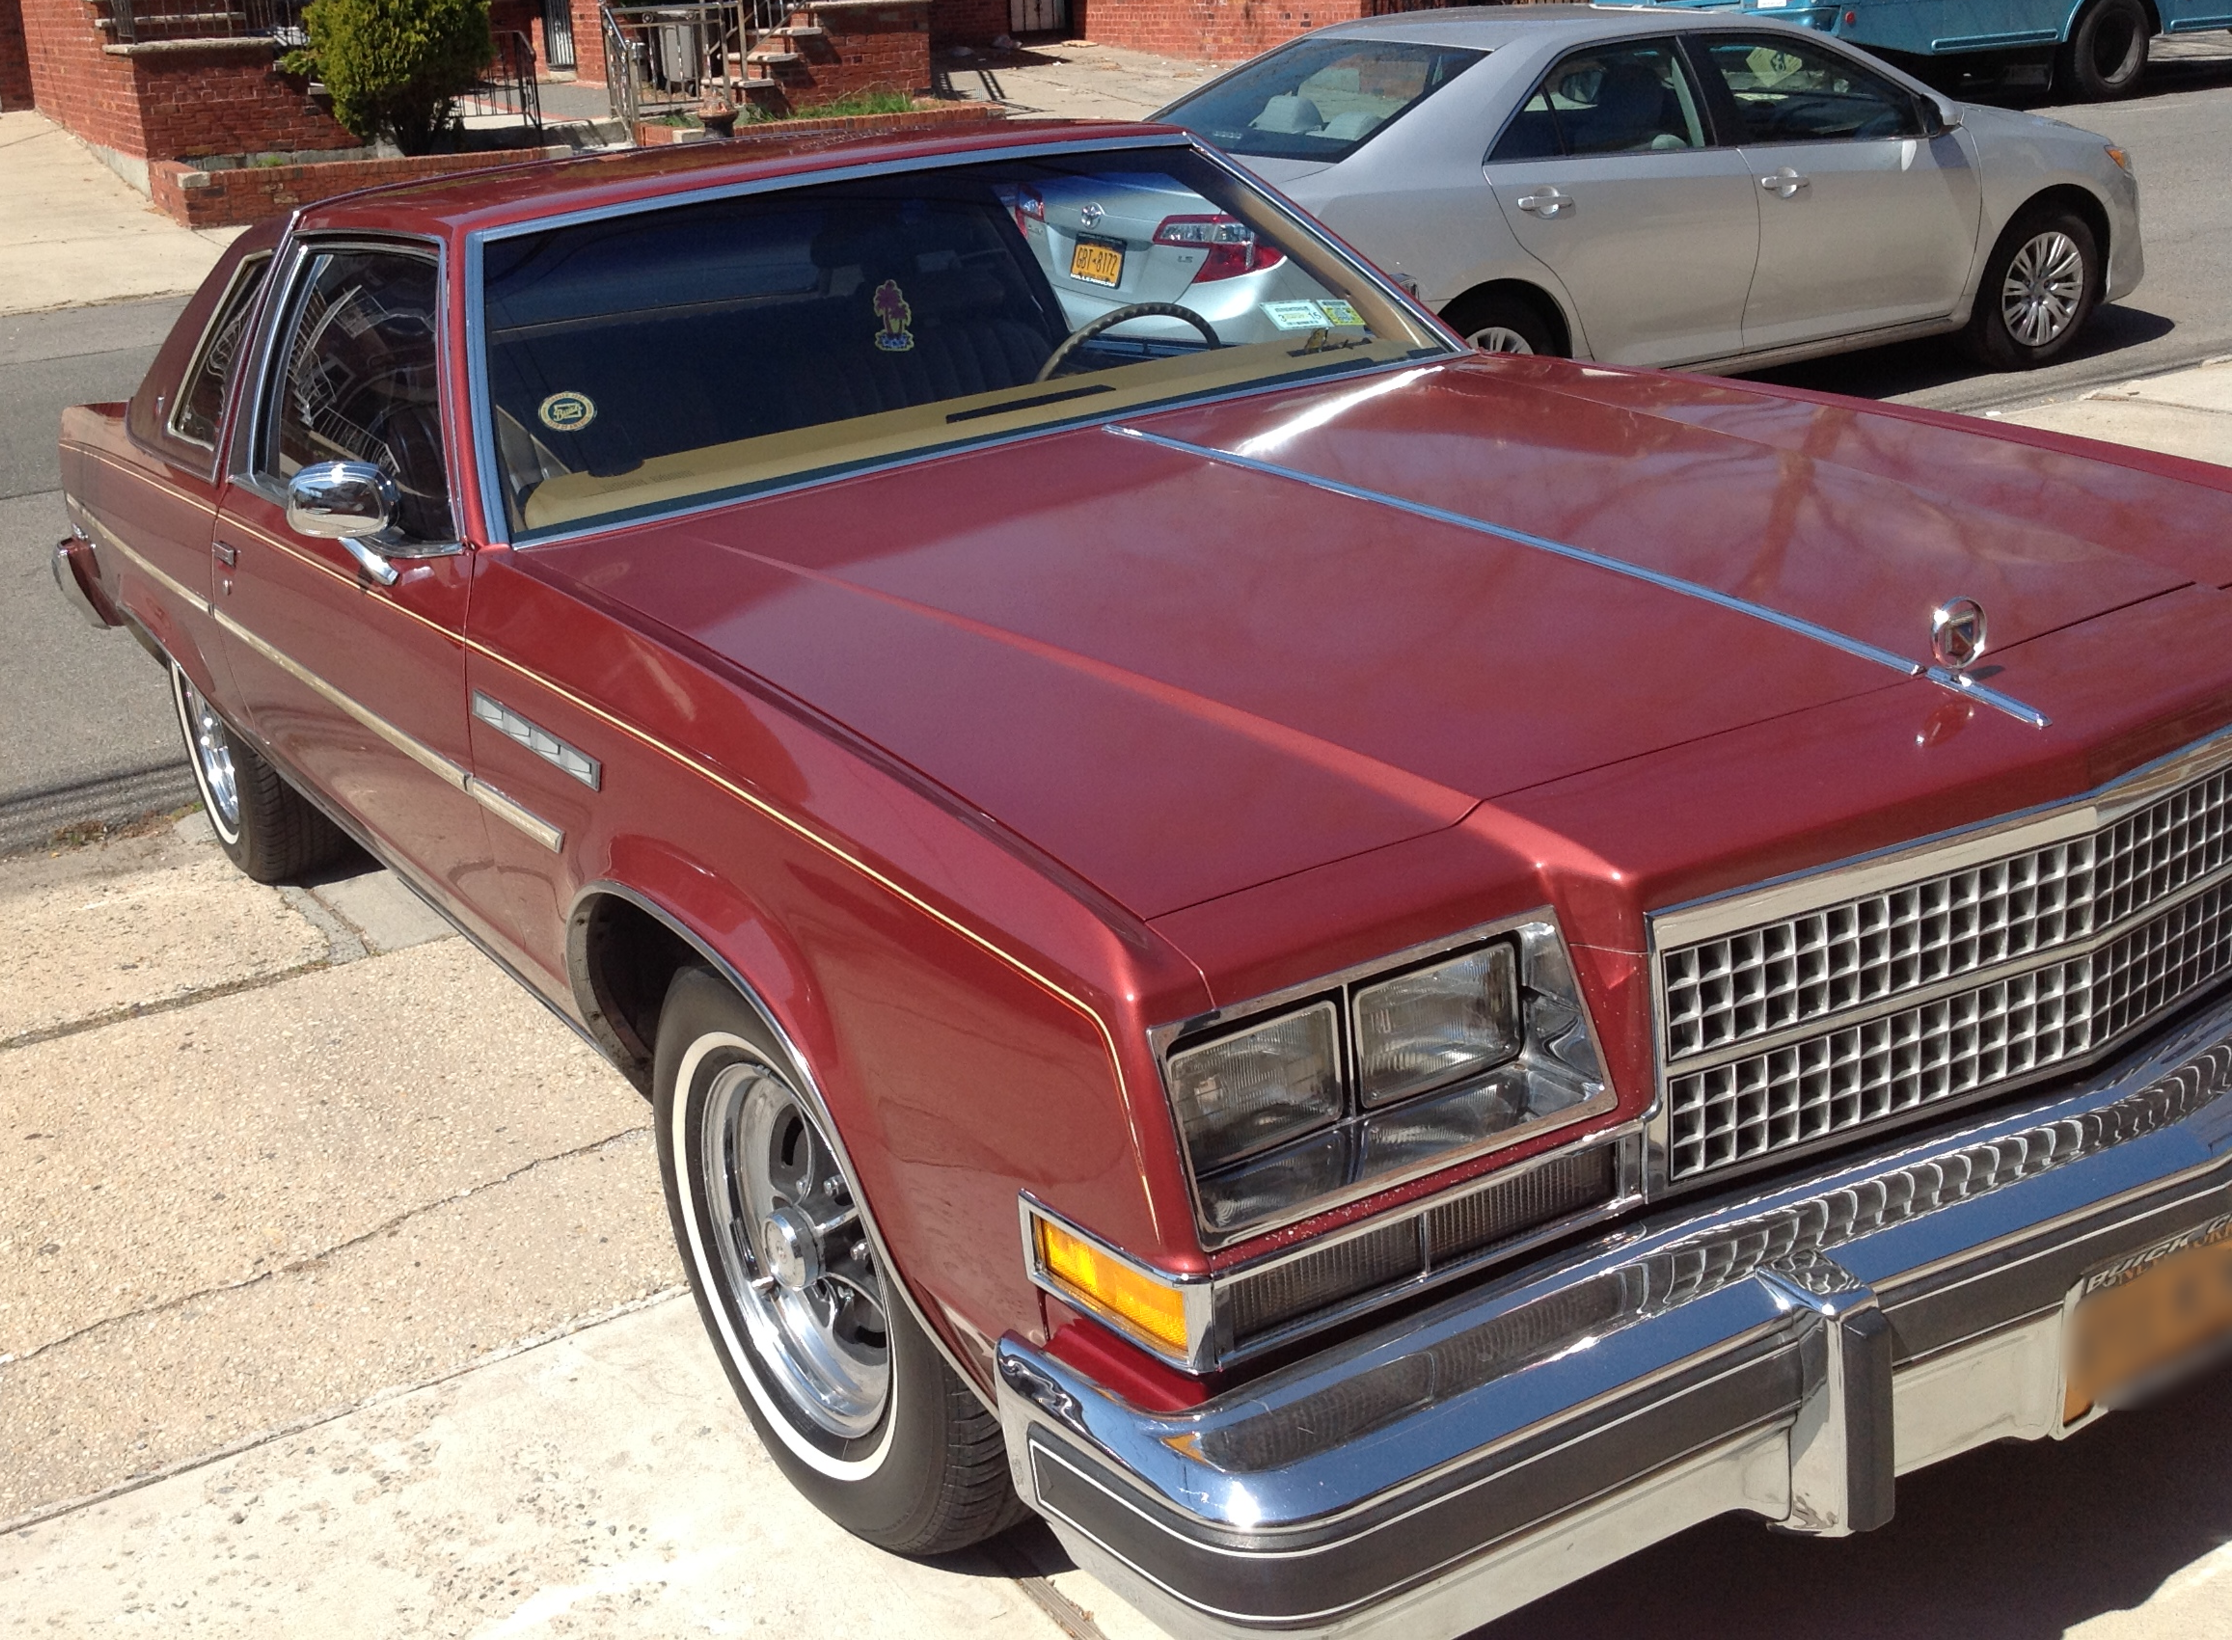 Michael Bloom: 1978 Electra 2dr Coupe